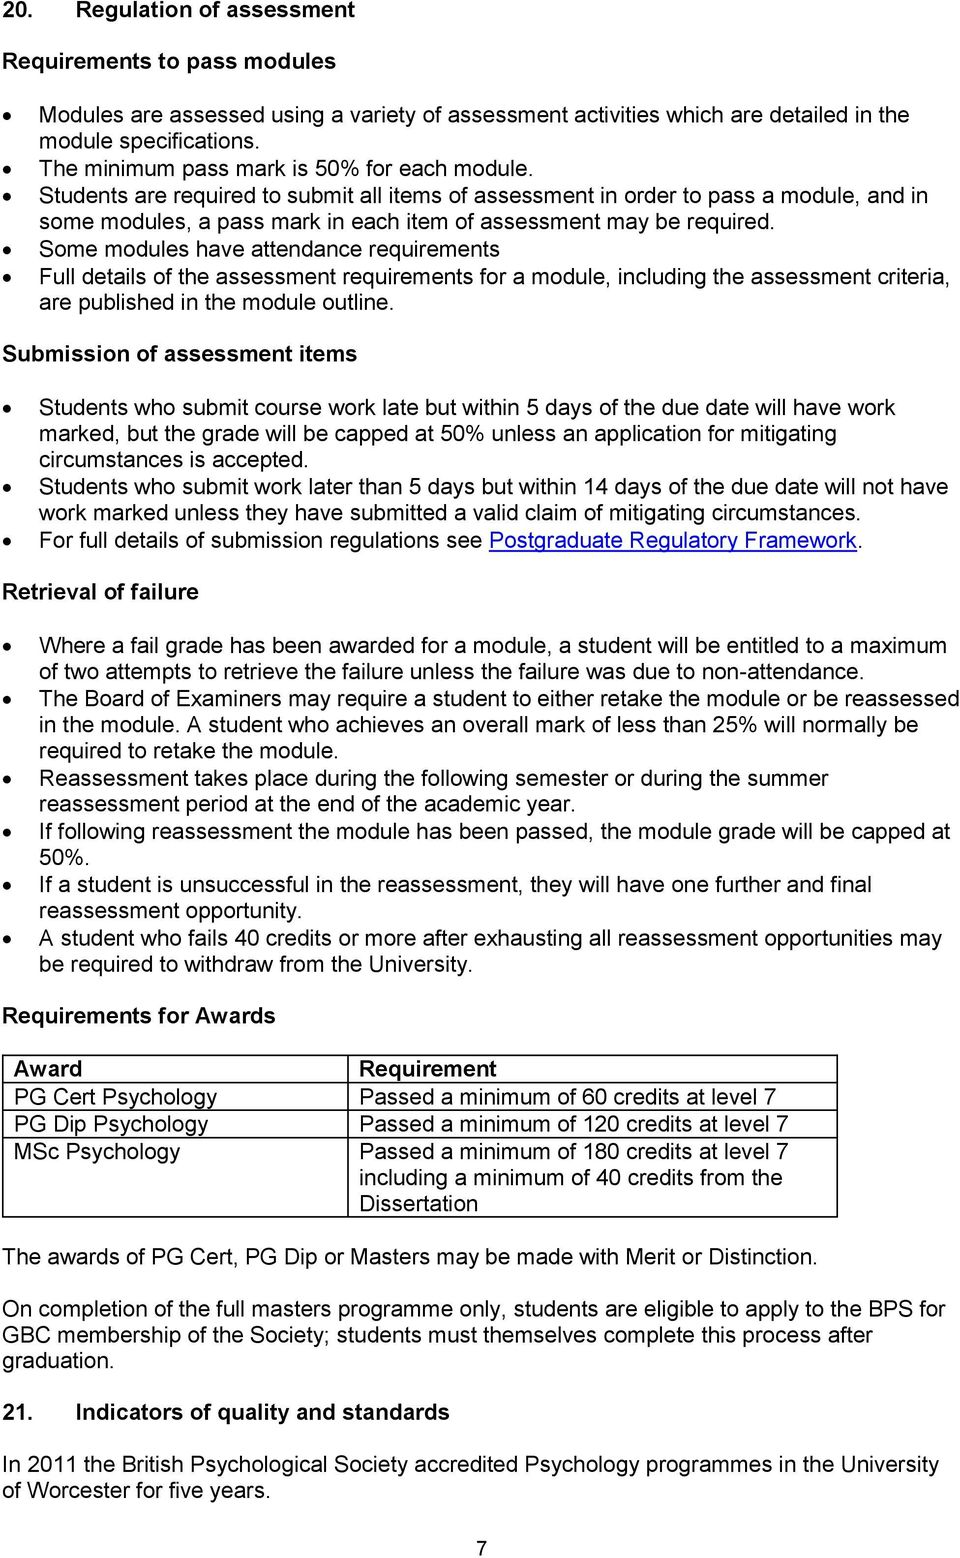 Students are required to submit all items of assessment in order to pass a module, and in some modules, a pass mark in each item of assessment may be required.